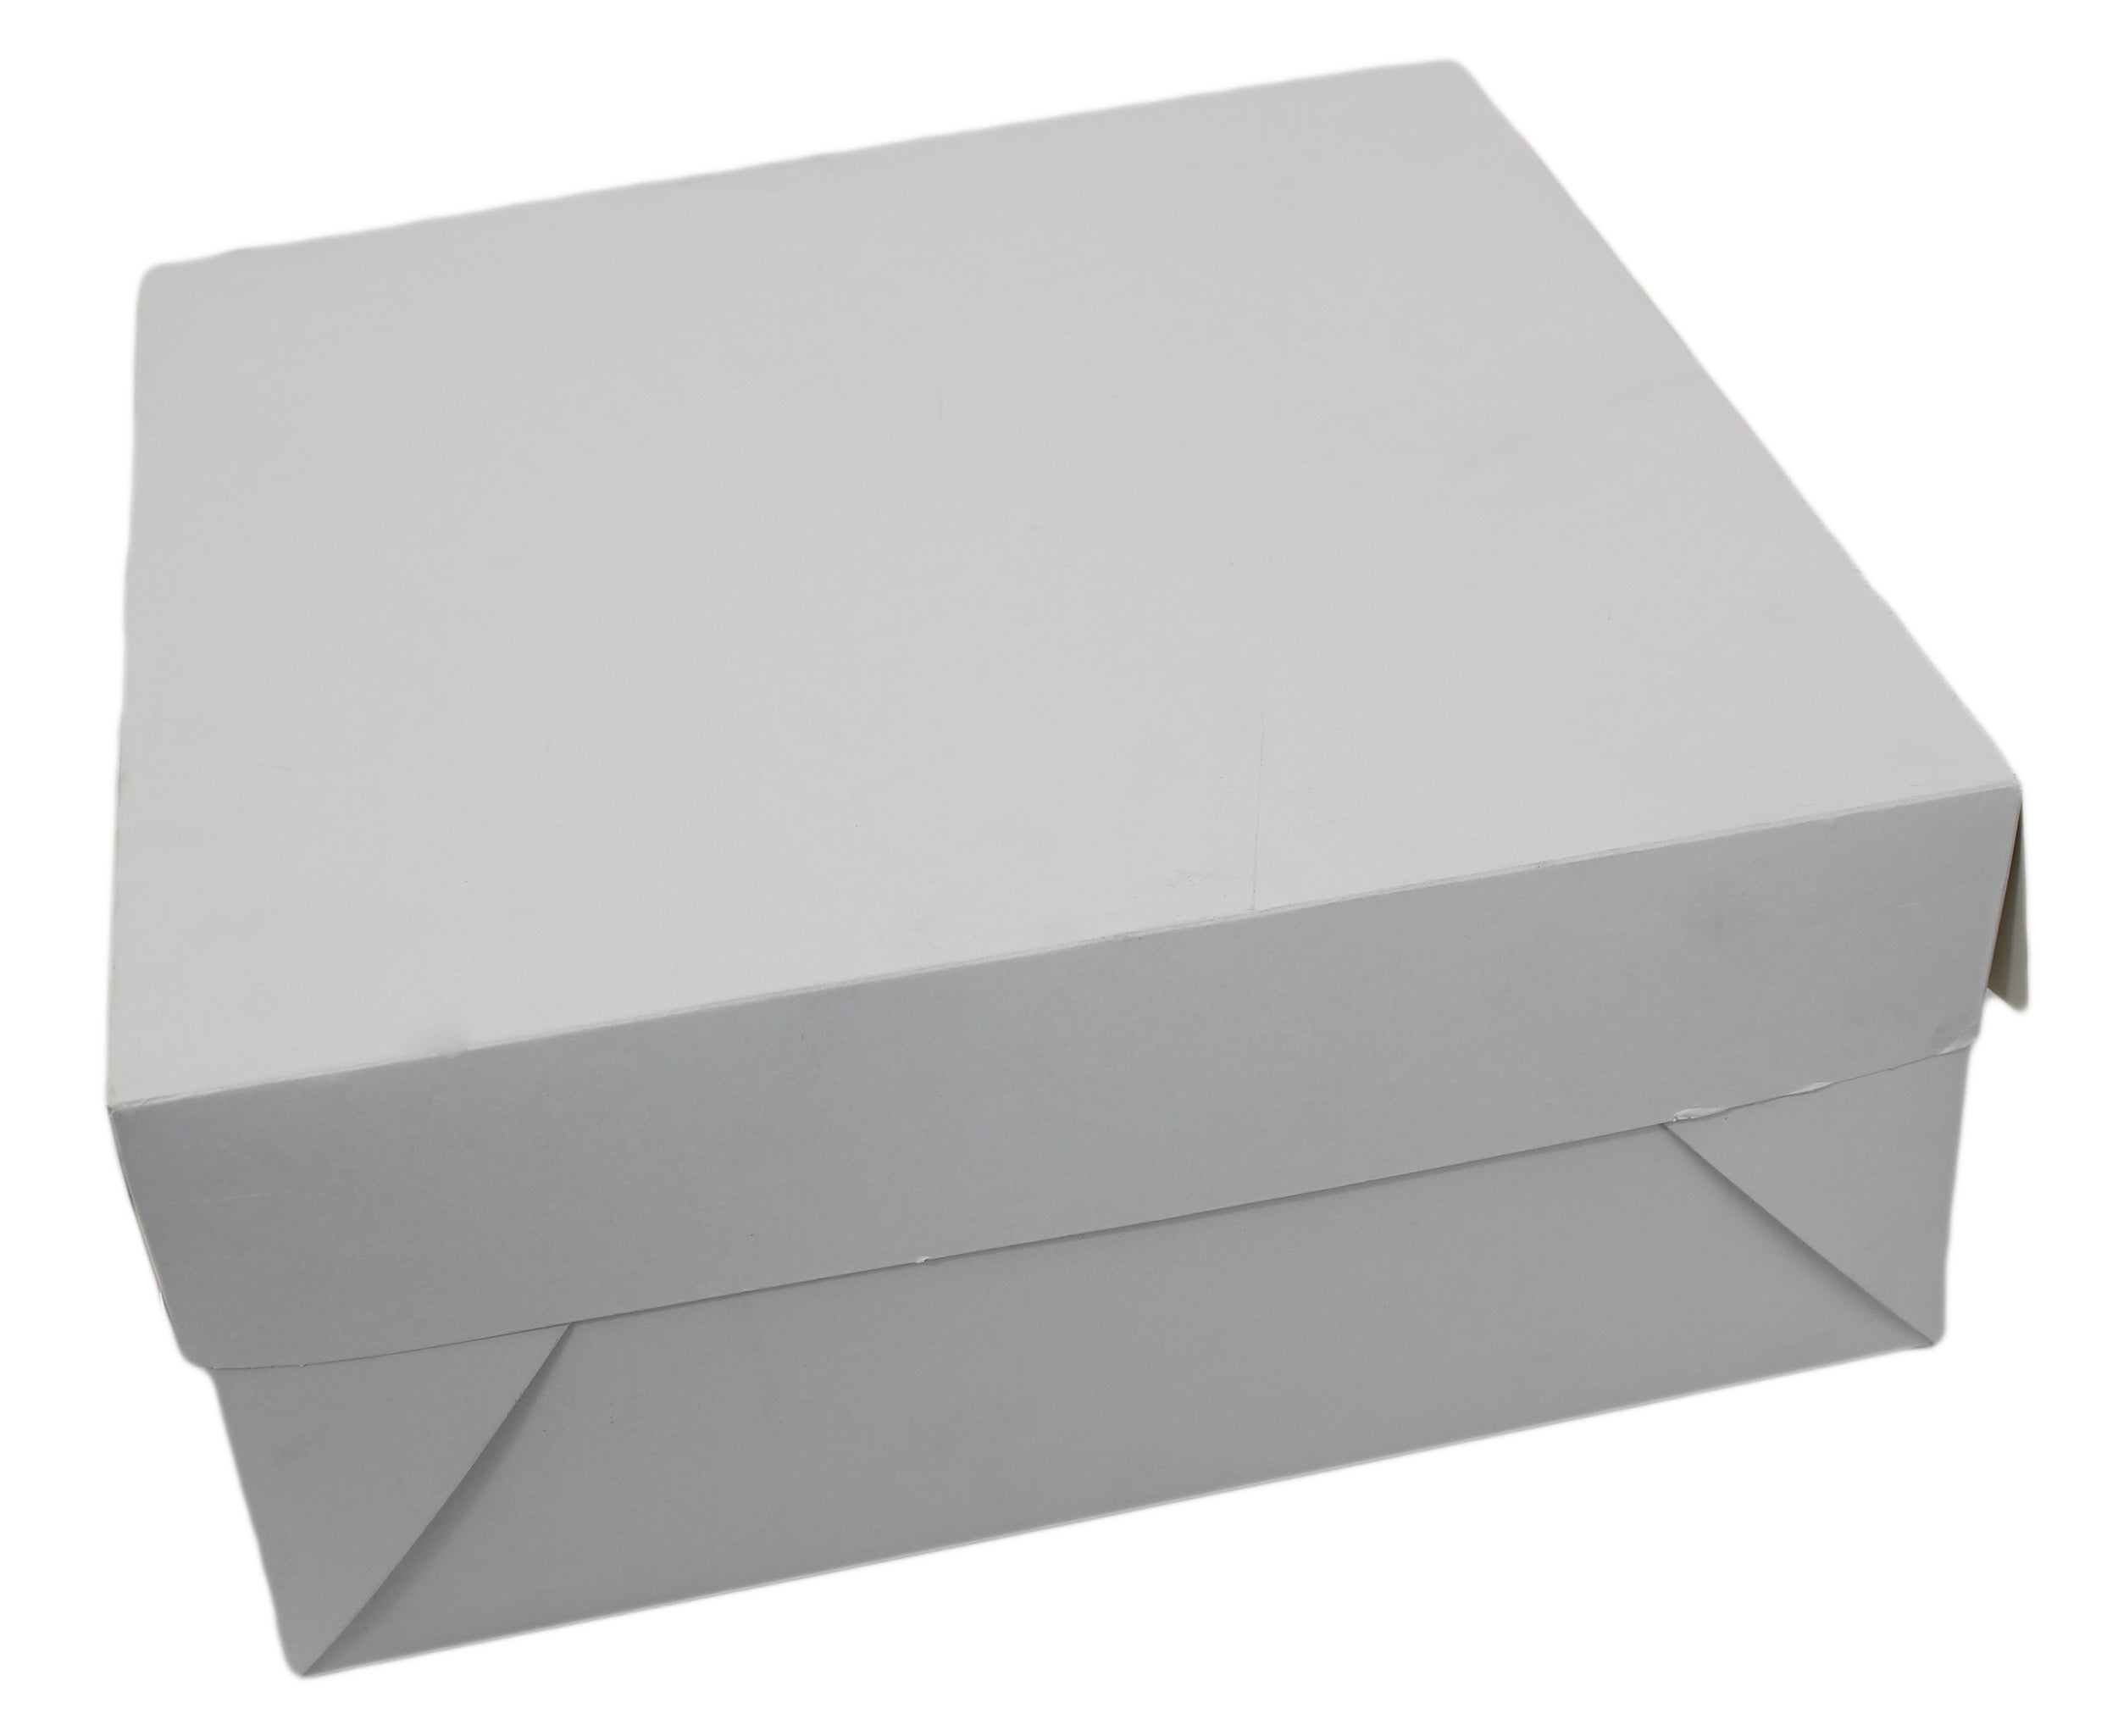 20x20x6'' Cake Boxes And Lids - Gafbros